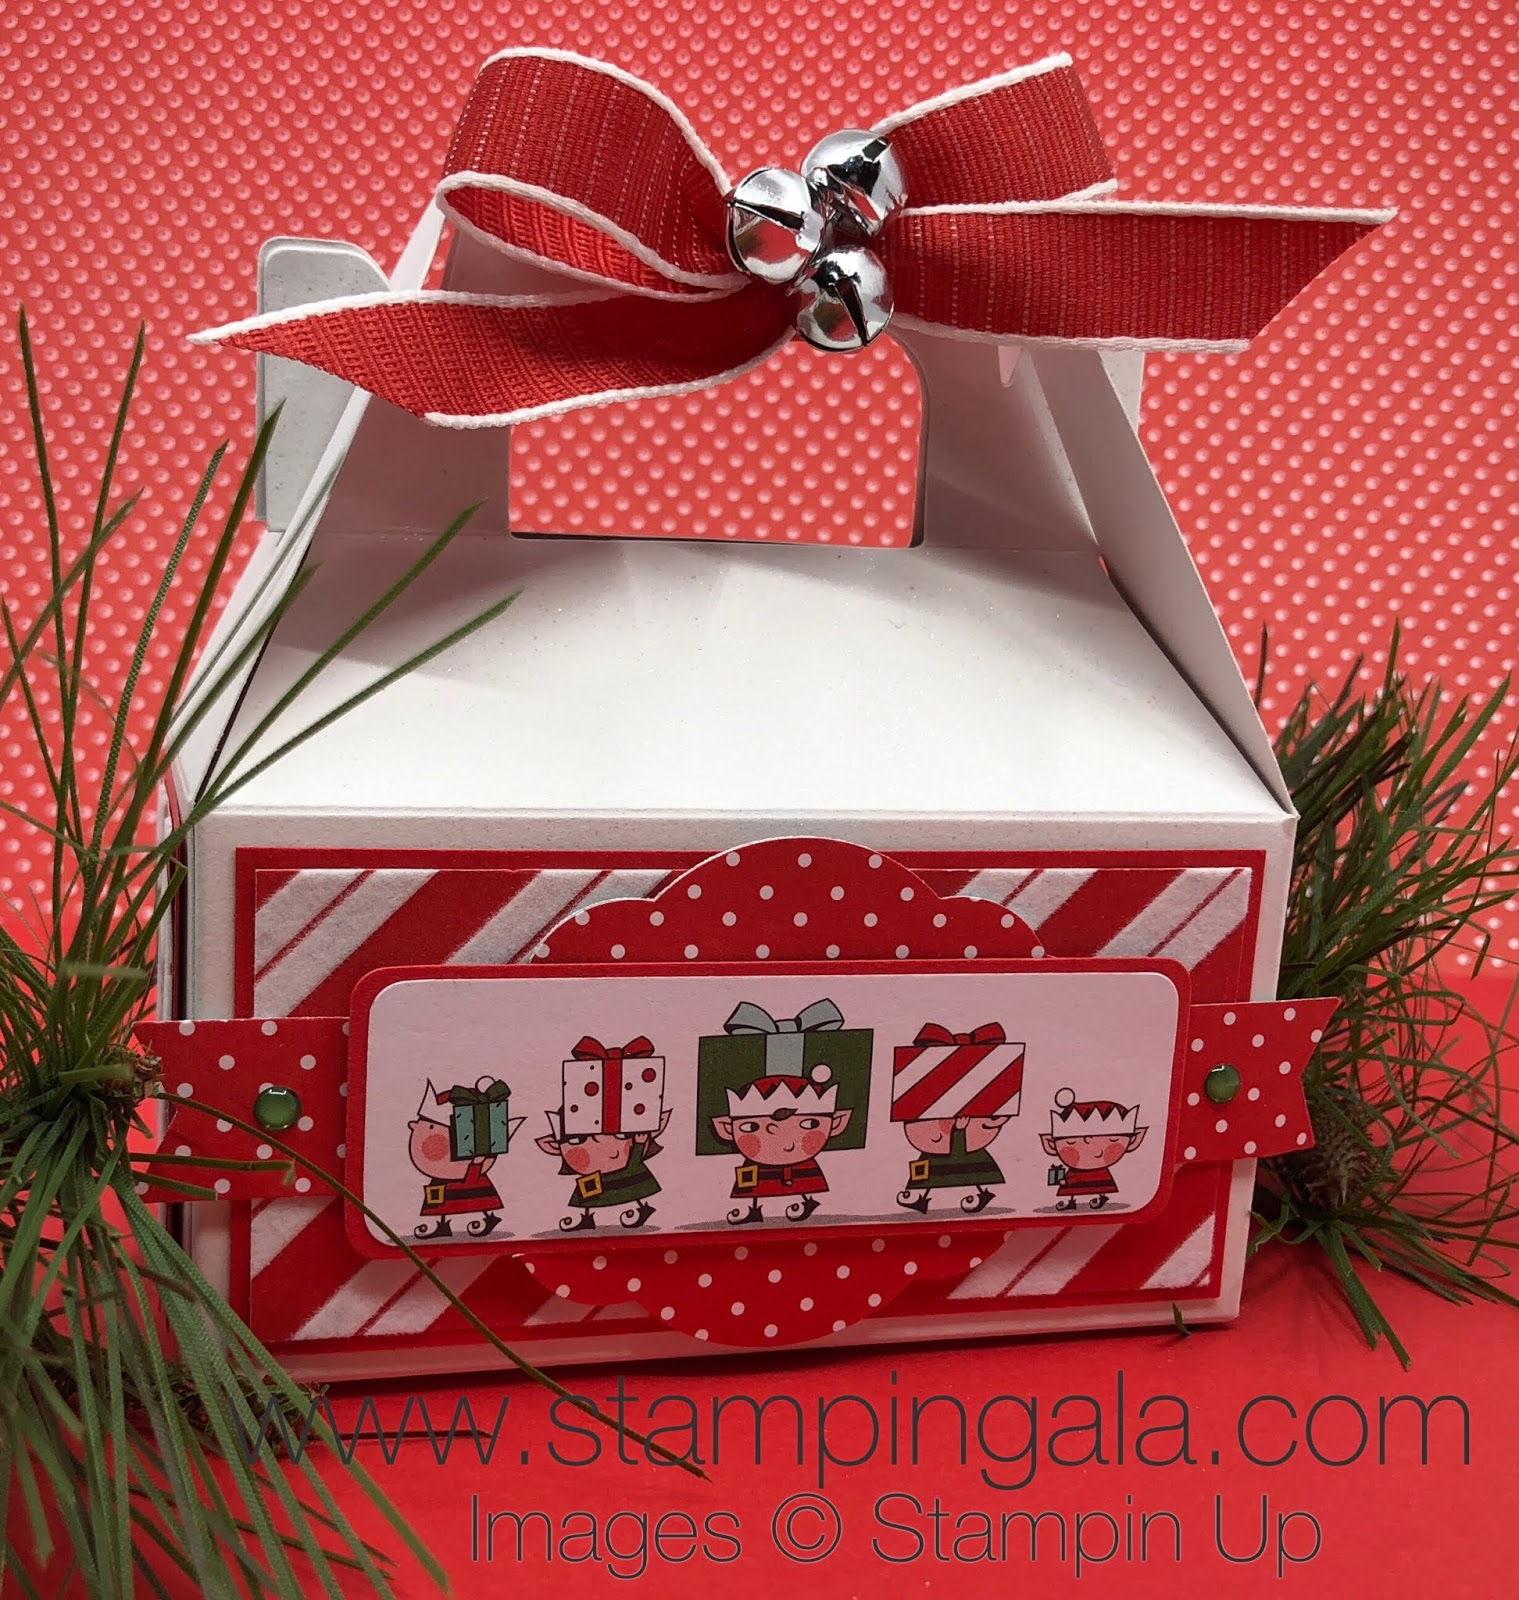 day 9 a gable box with santas elves carrying lots of gifts for christmas this box will fit lots of yummy treats